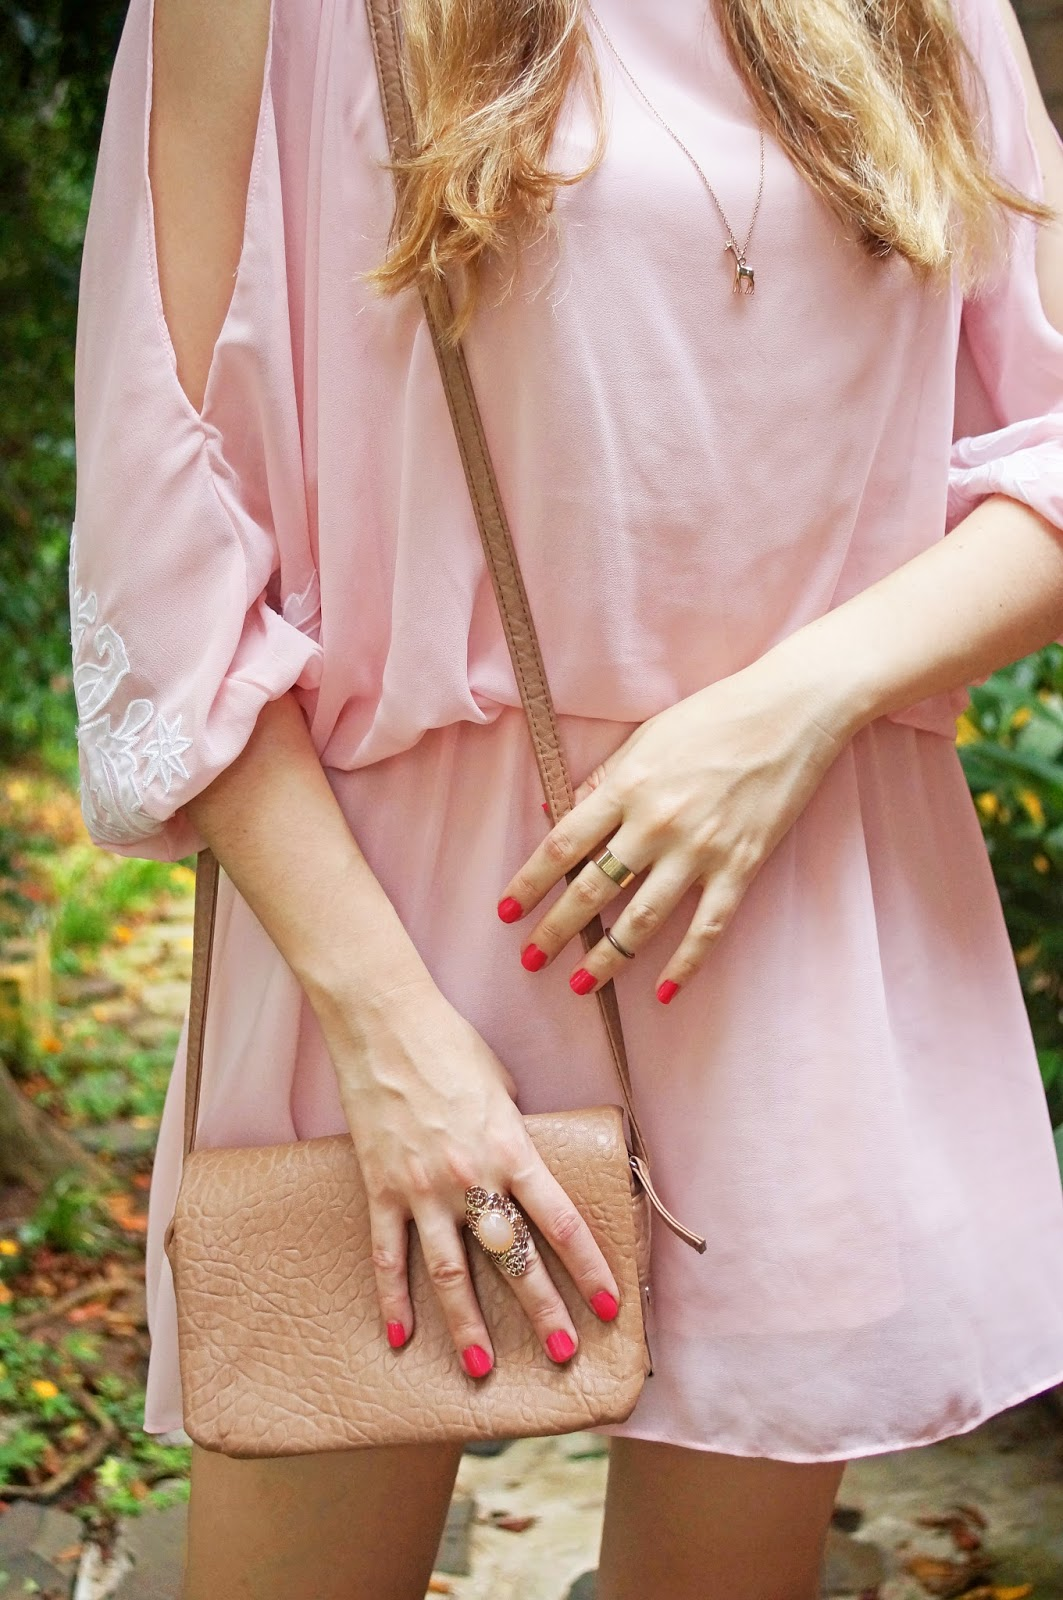 Loving this pink dress and cute accessories!